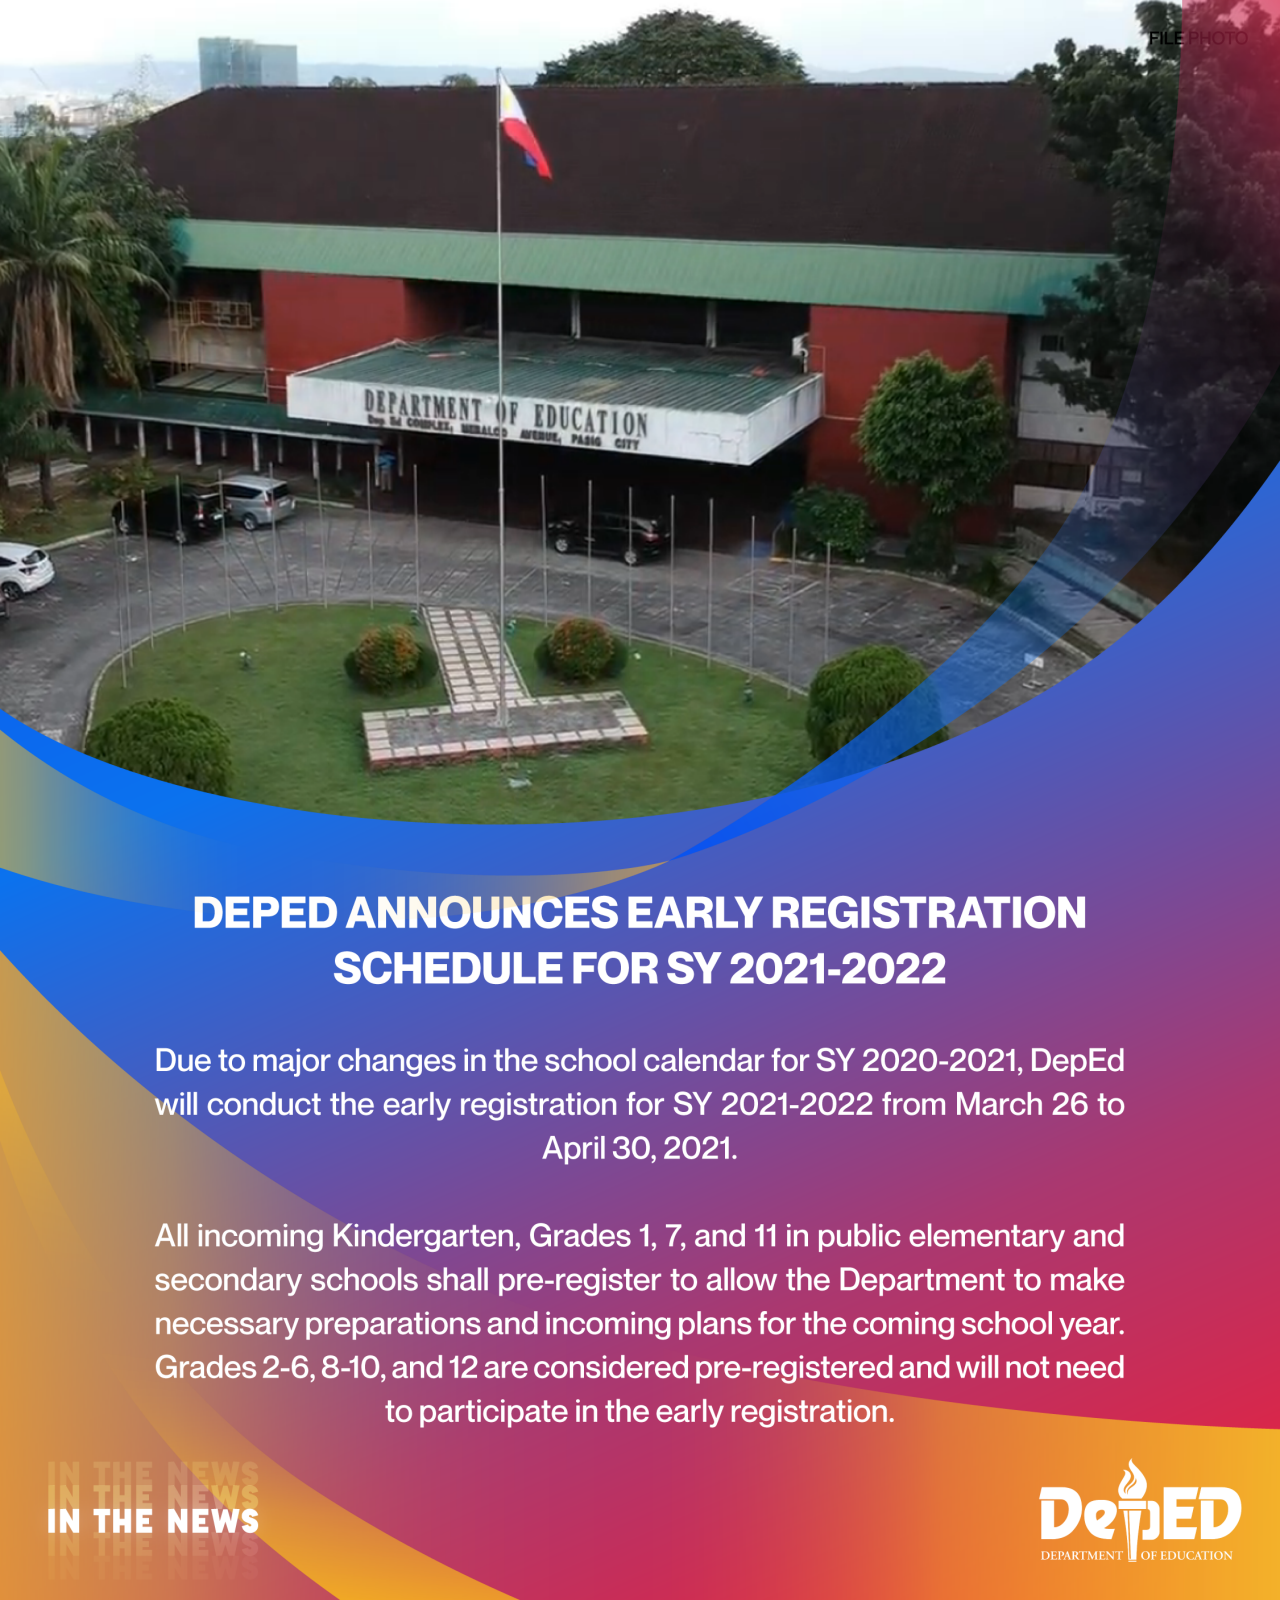 House Of Representatives Calendar 2022.Deped Announces Early Registration Schedule For Sy 2021 2022 Department Of Education